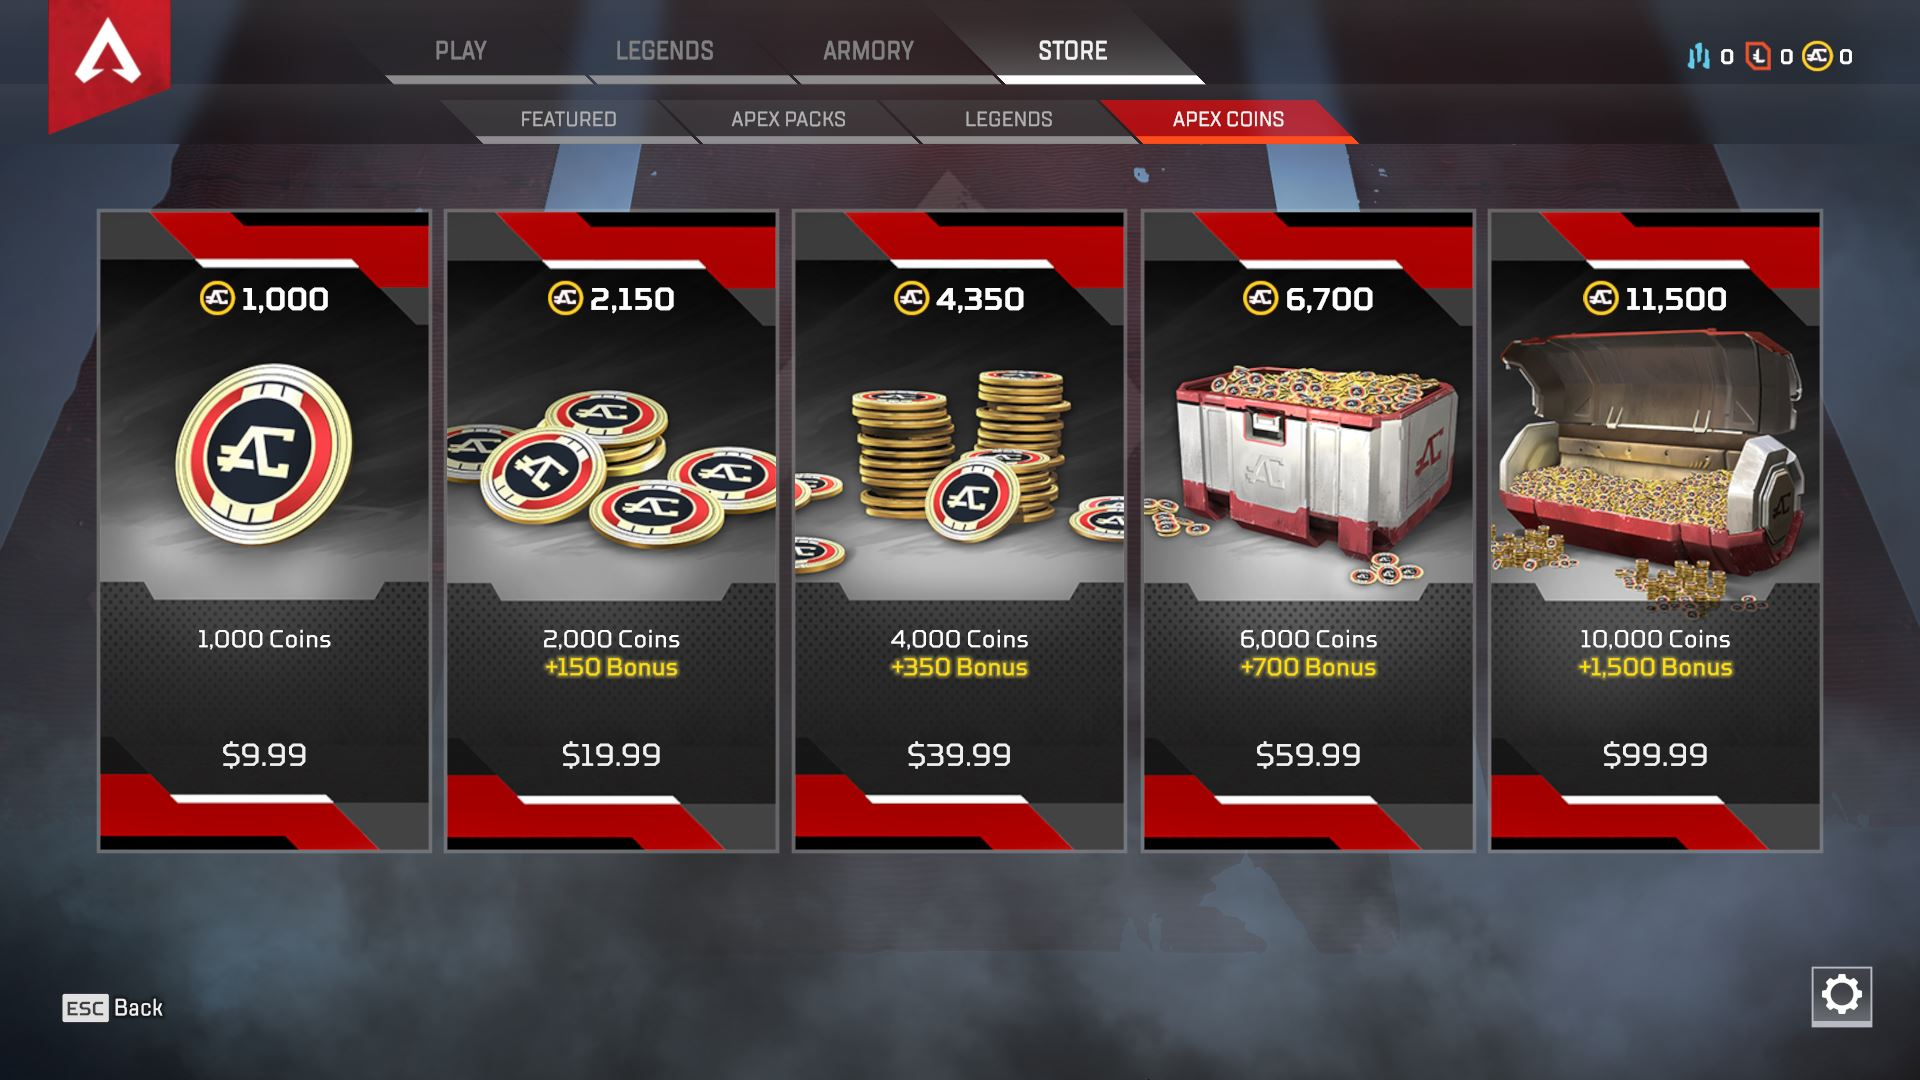 You can purchase Apex Coins in exchange for real money in Apex Legends.